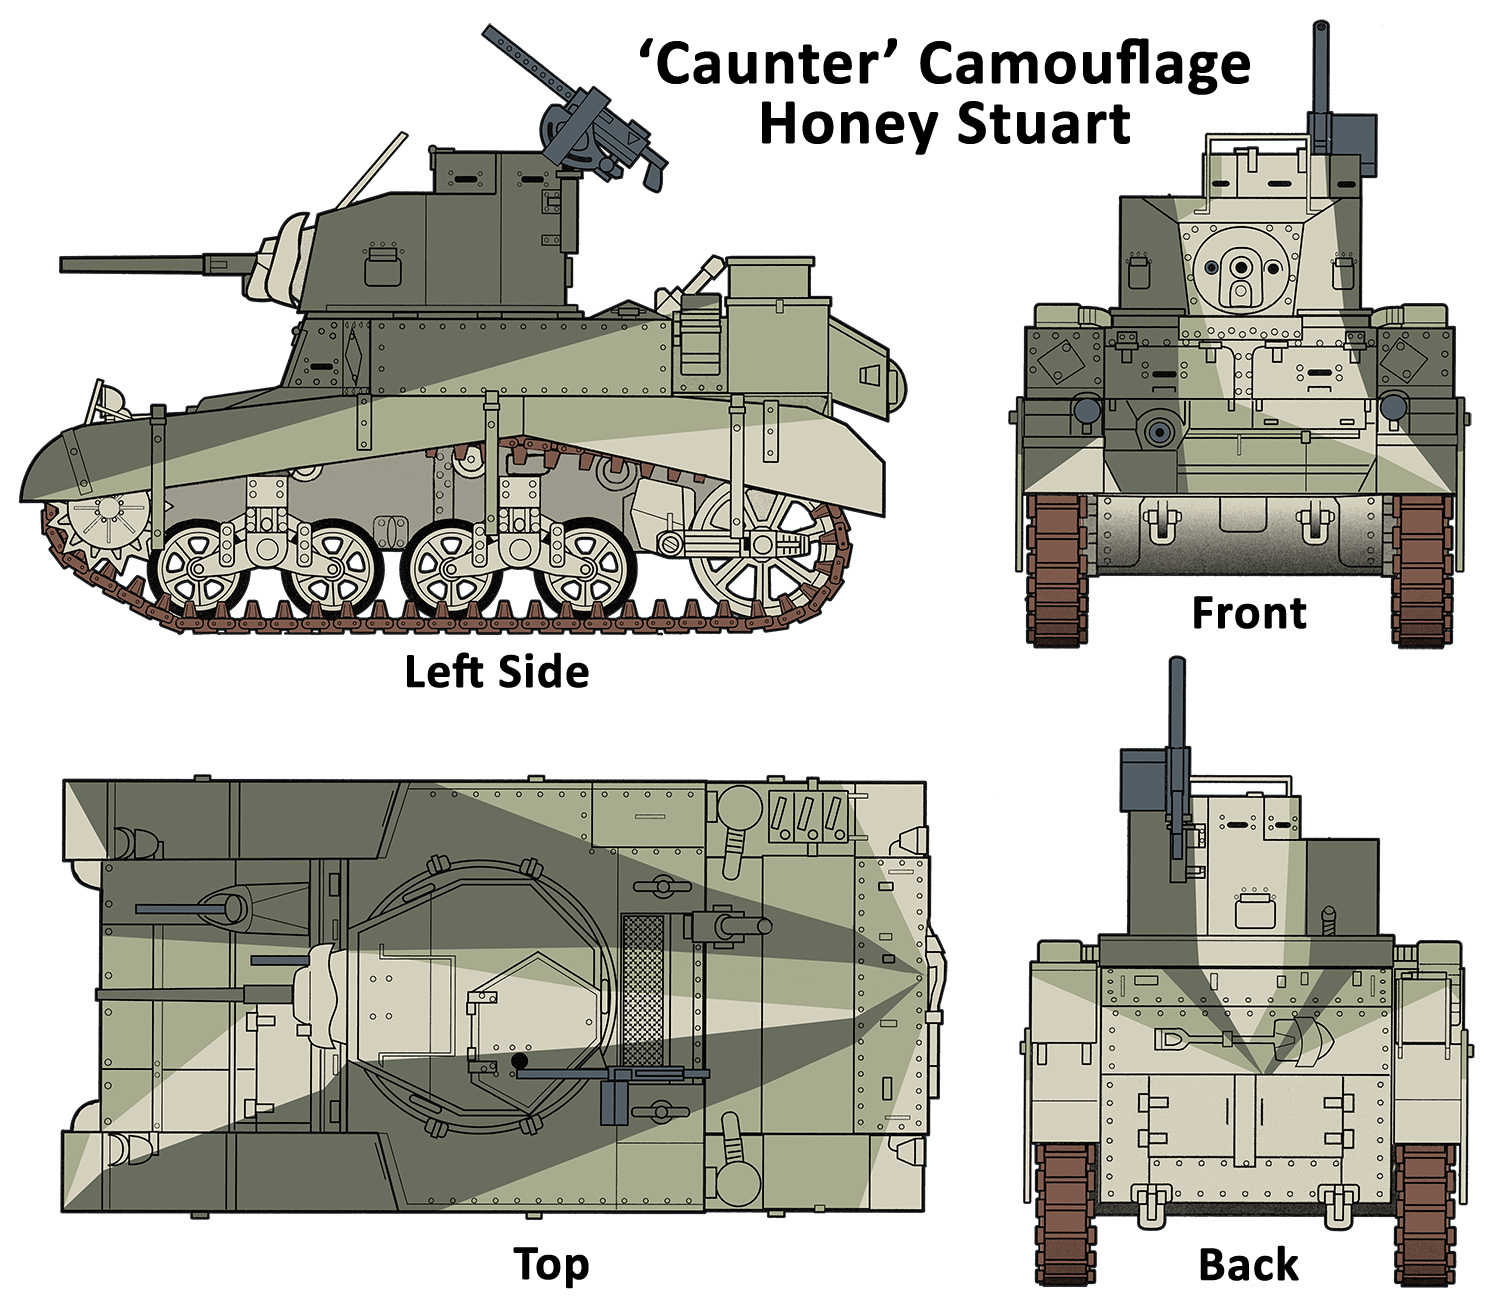 'Caunter' Camouflage Honey Stuart